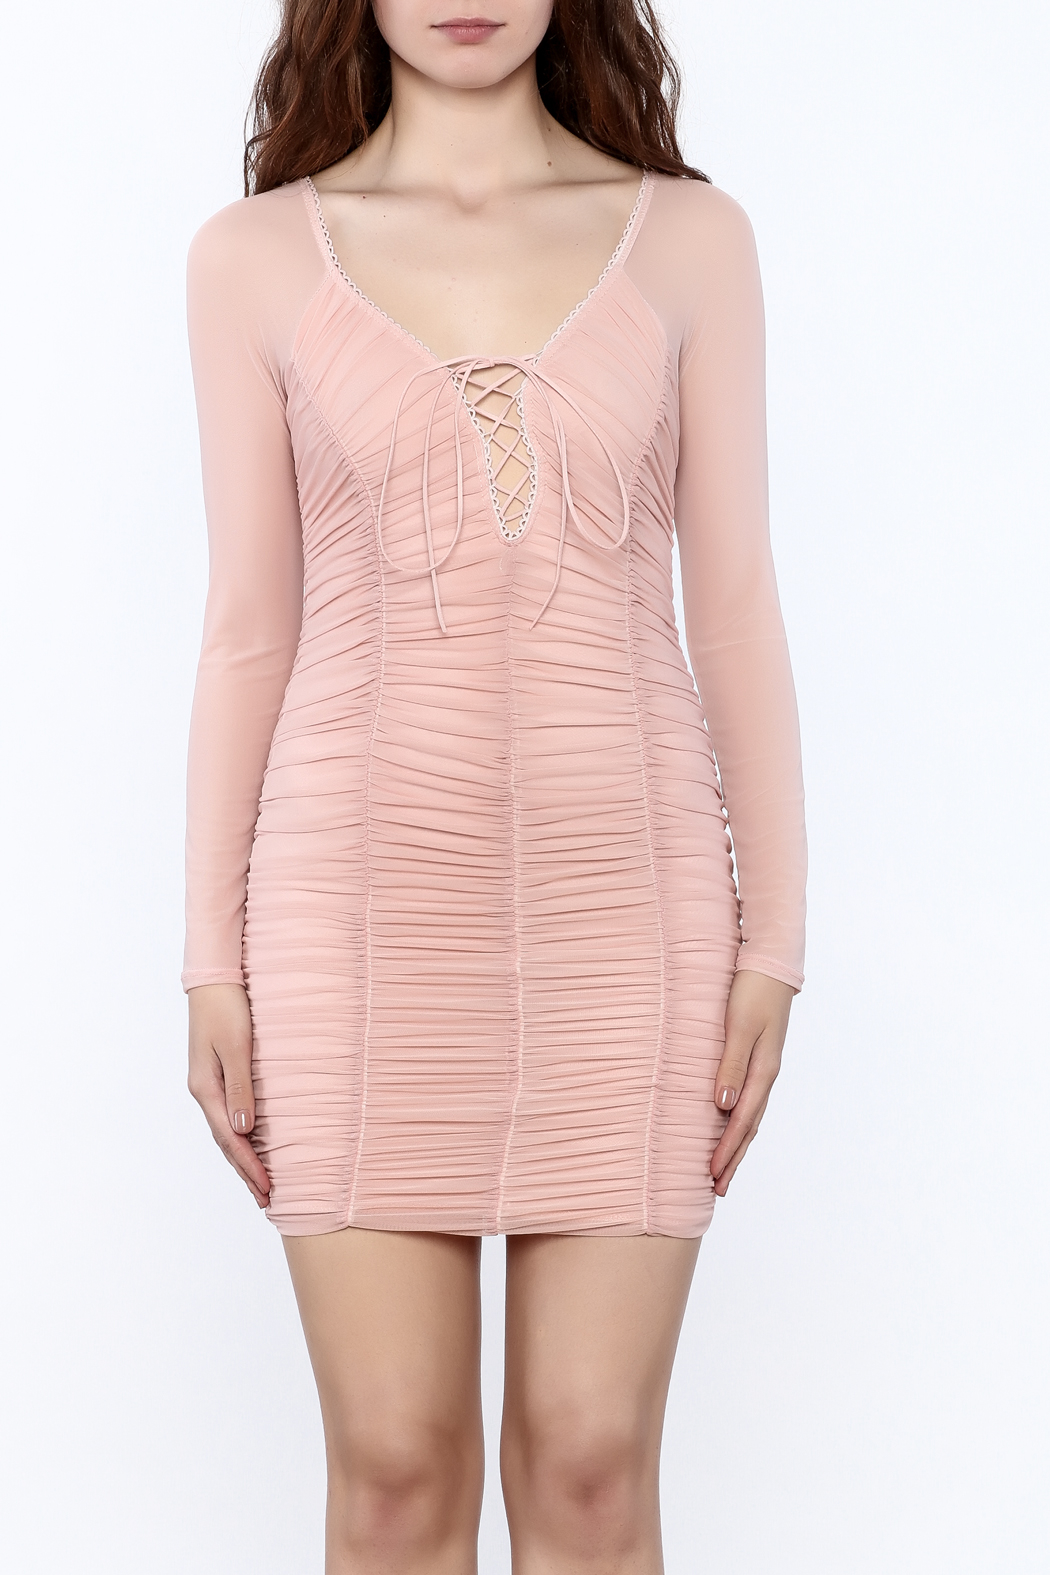 K too Pink Ruched Dress - Side Cropped Image